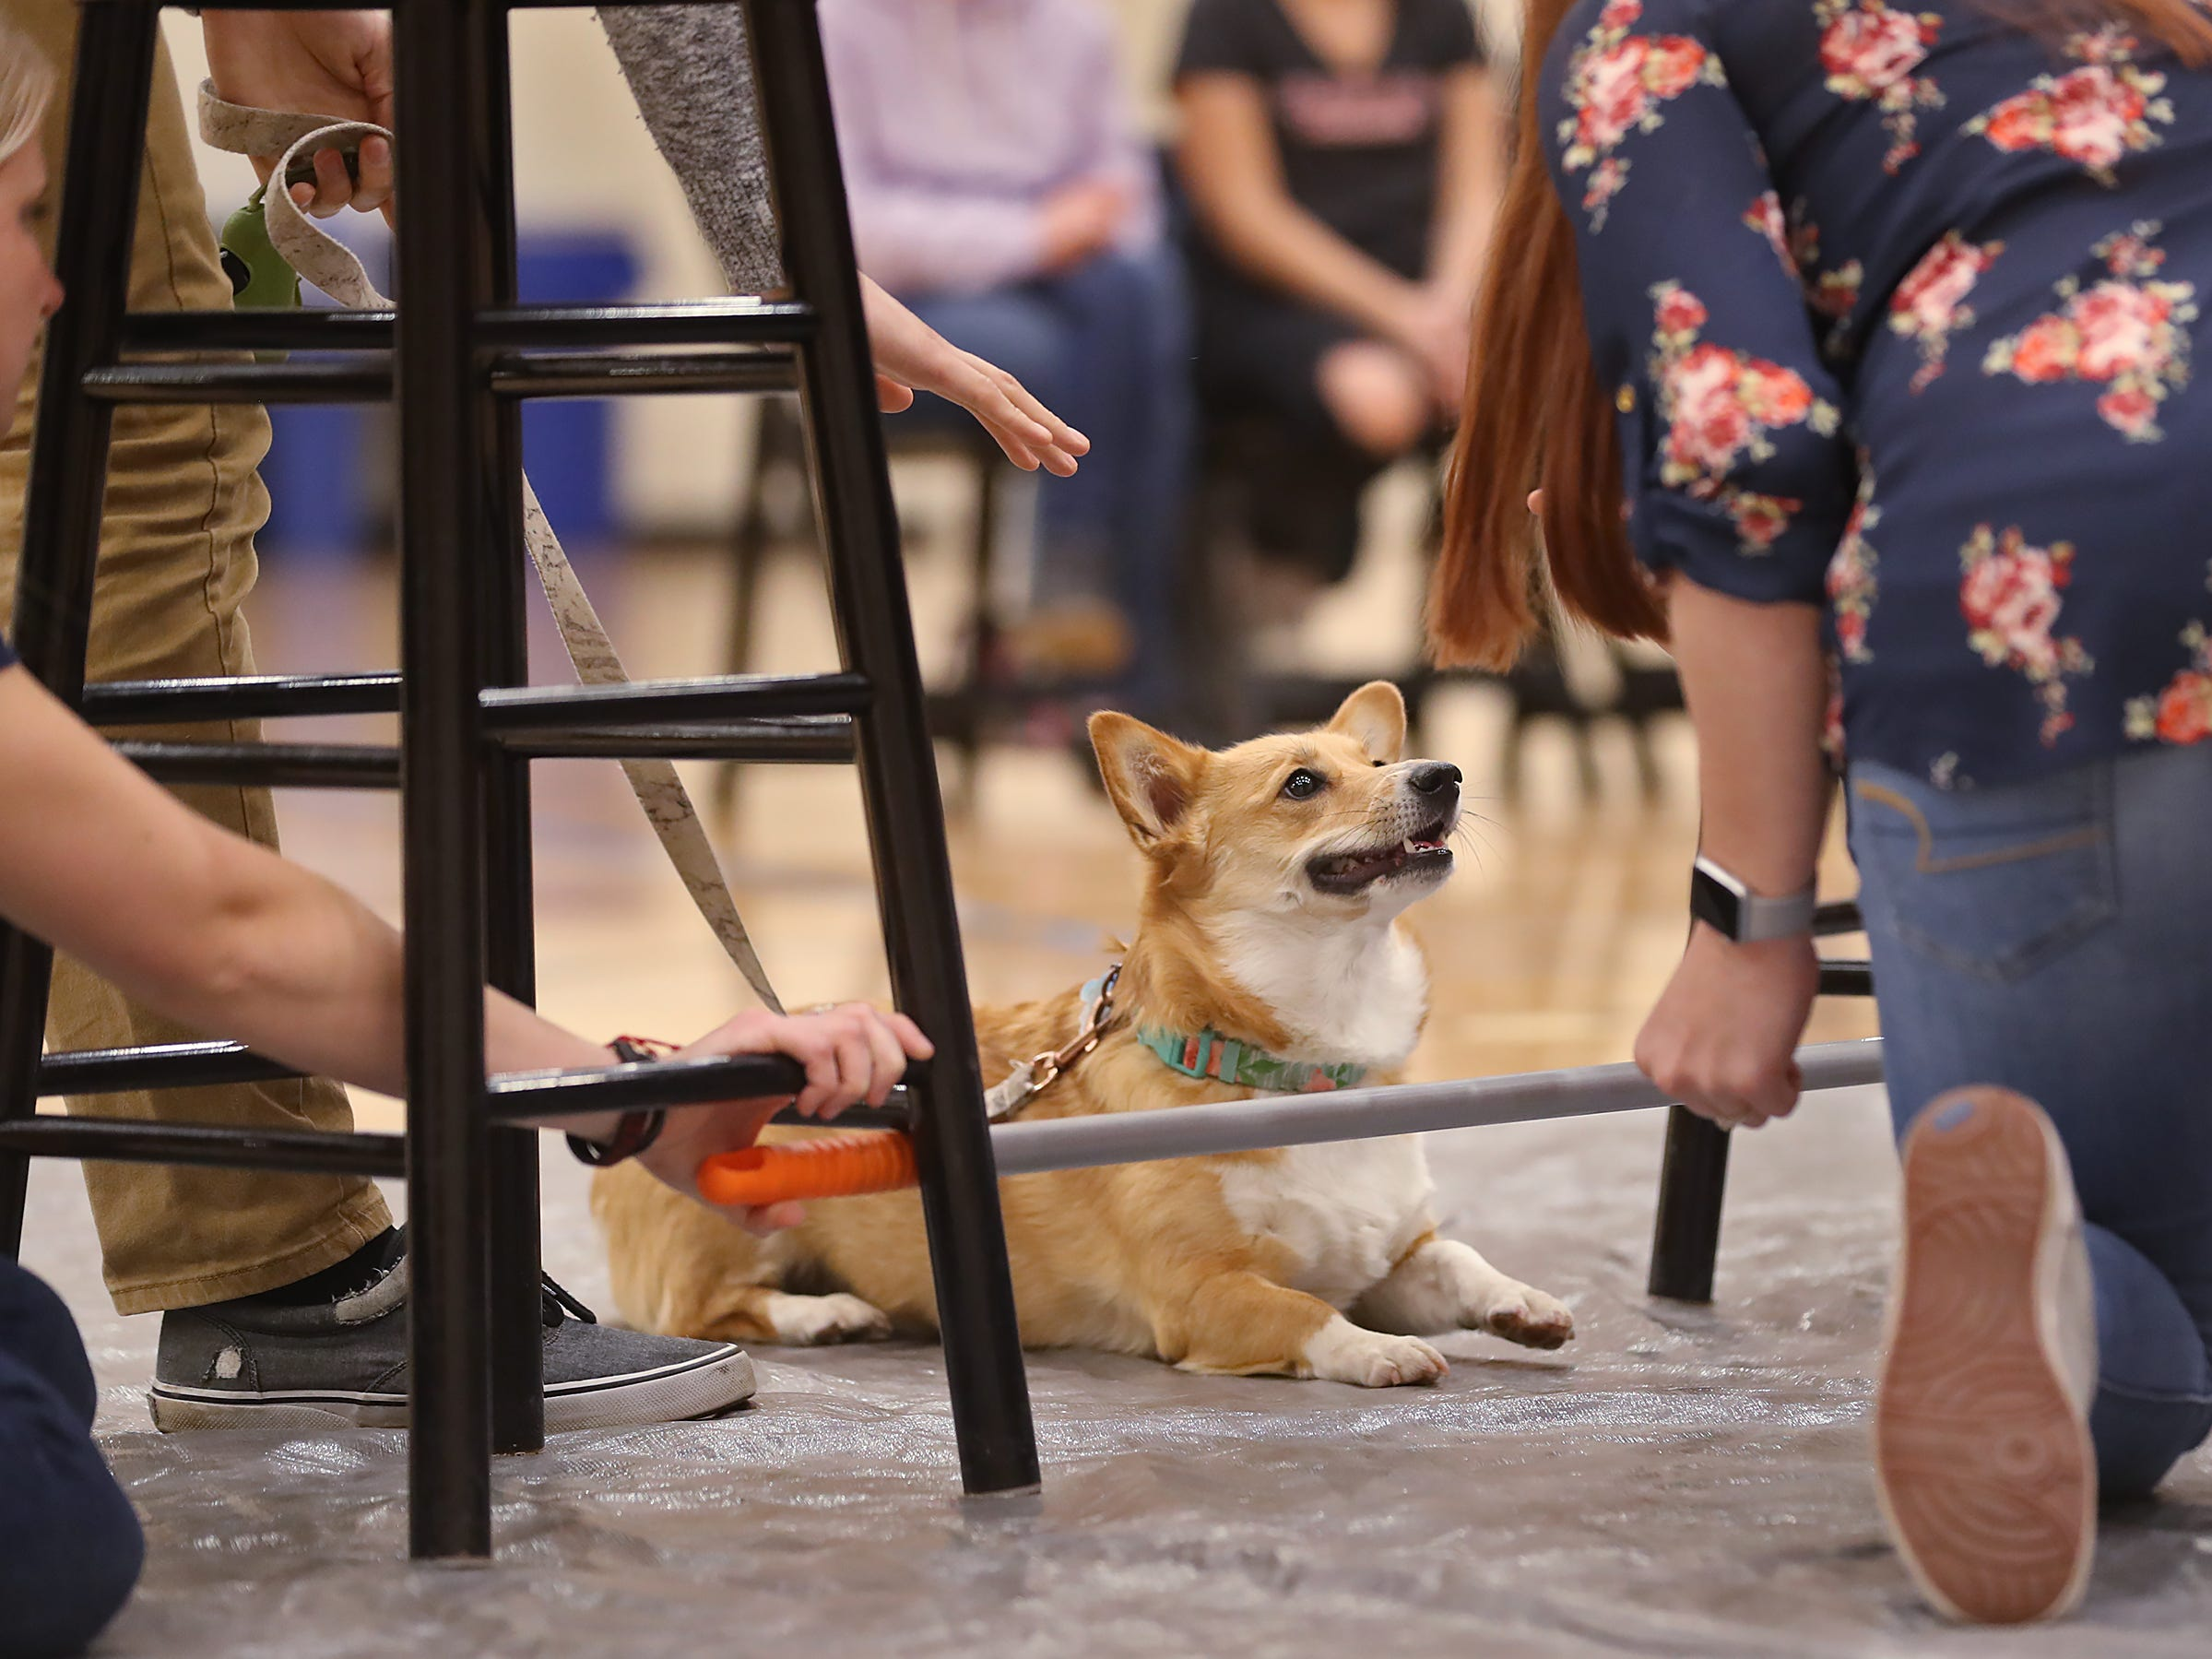 Murphy thinks about making it under the low bar during the limbo competition at the Indianapolis Corgi Limbo & Costume Contest at IUPUI, Sunday, April 14, 2019.  The event benefits children orphaned by HIV/AIDS in eSwatini, Africa.  It is presented by the Give Hope, Fight Poverty IUPUI chapter.